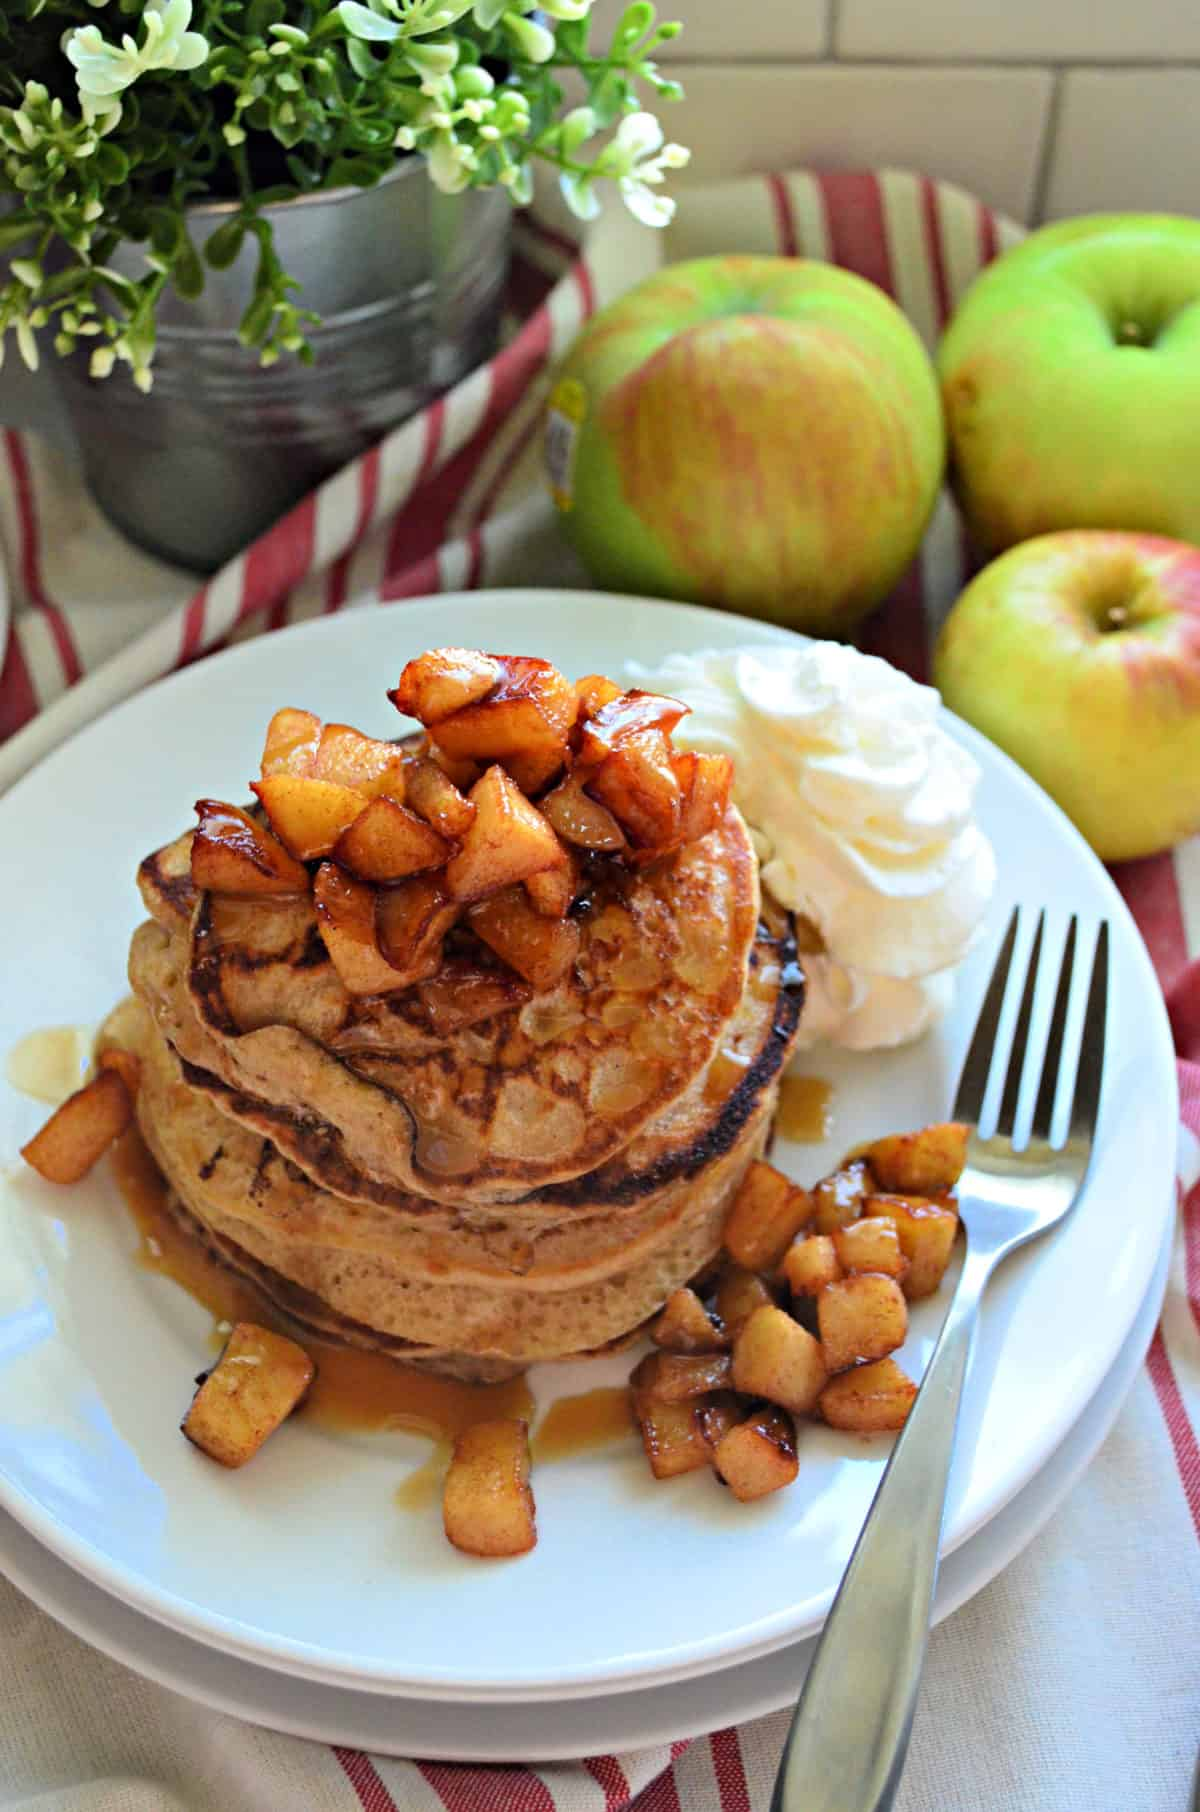 stack of cinnamon pancakes topped with cubed apples and syrup with whipped cream.